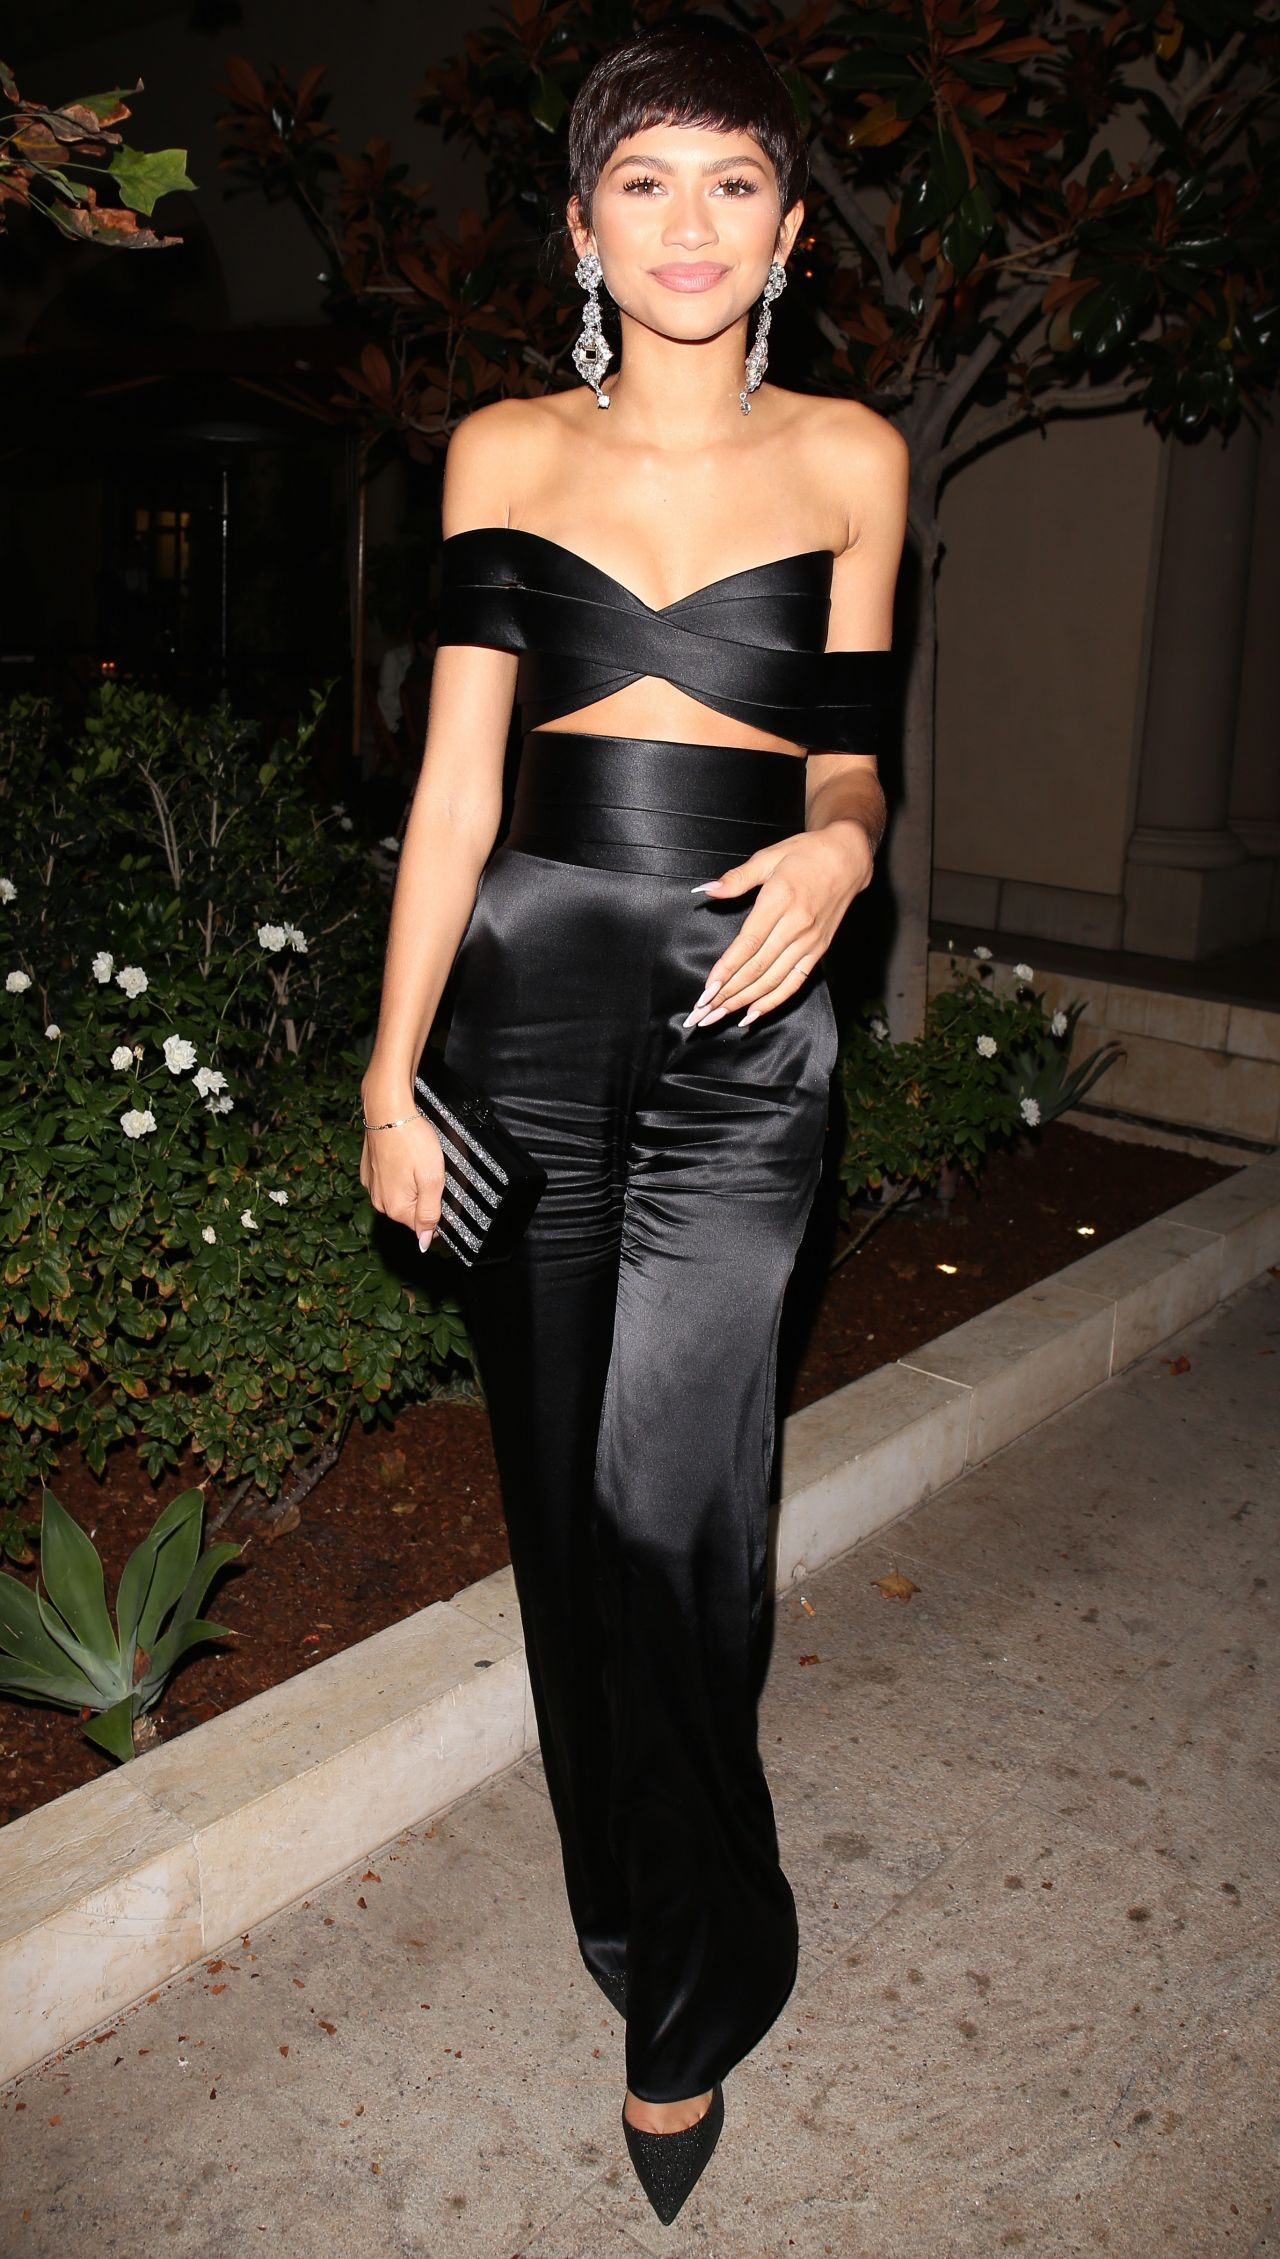 zendaya-at-the-chateau-marmont-in-west-hollywood-october-2015_1